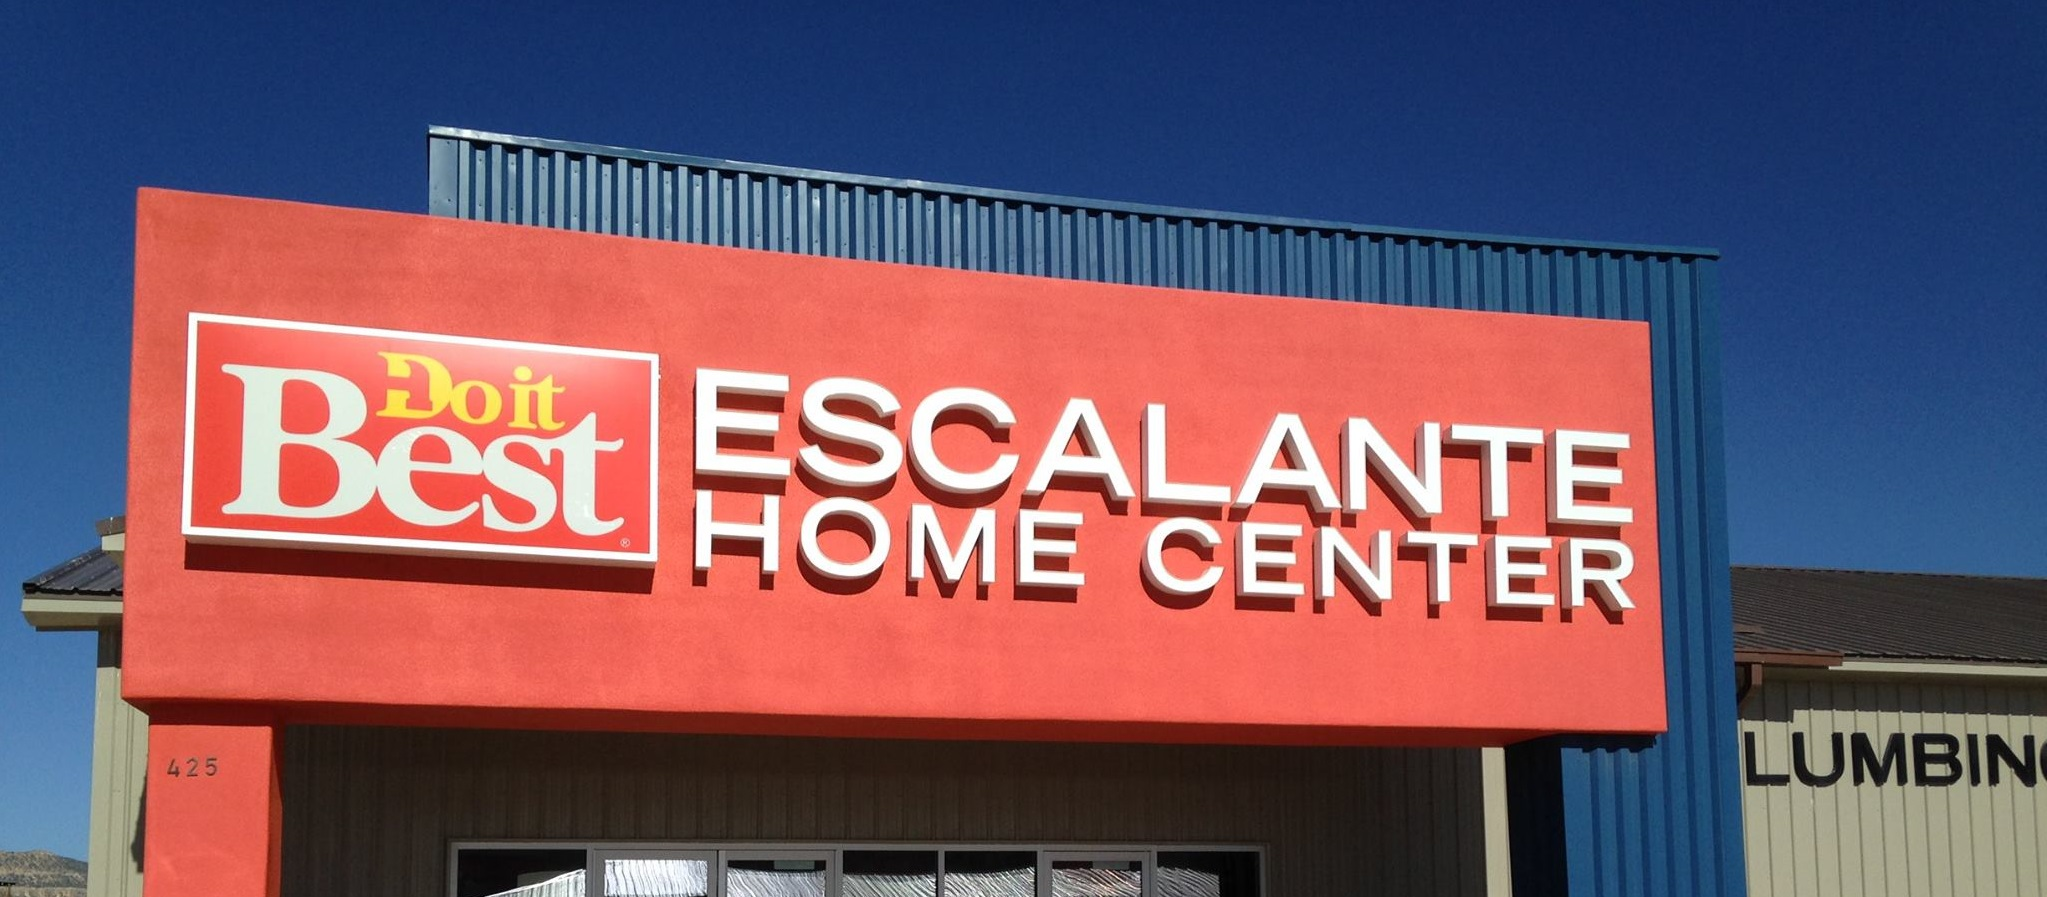 Escalante Home Center Storefront